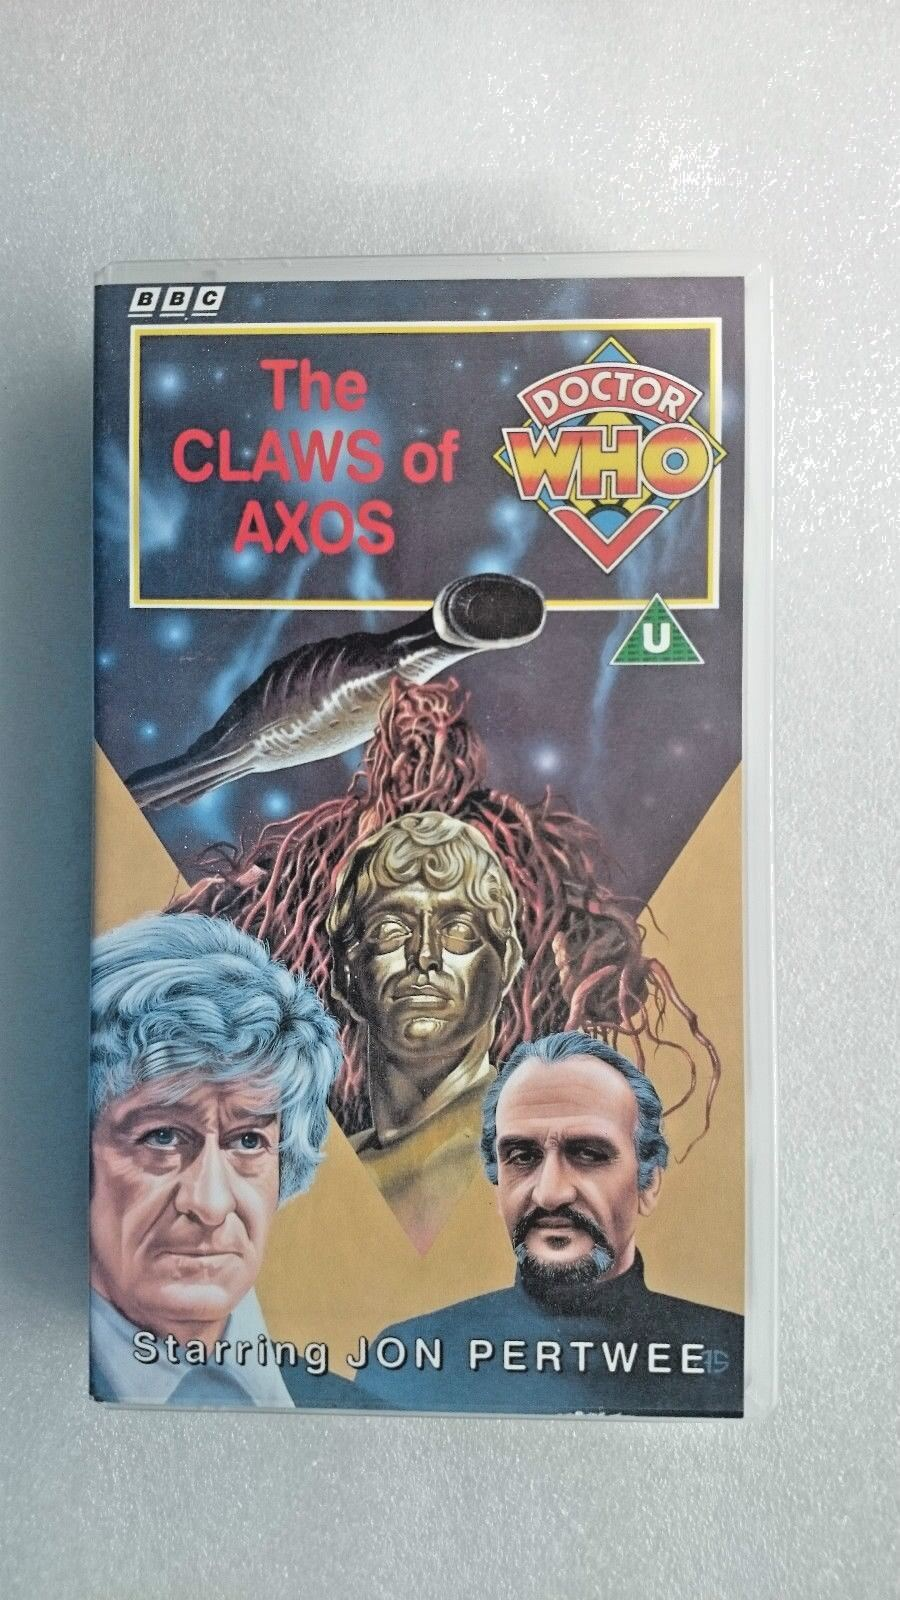 Doctor Who - The Claws Of Axos (VHS) - Jon Pertwee